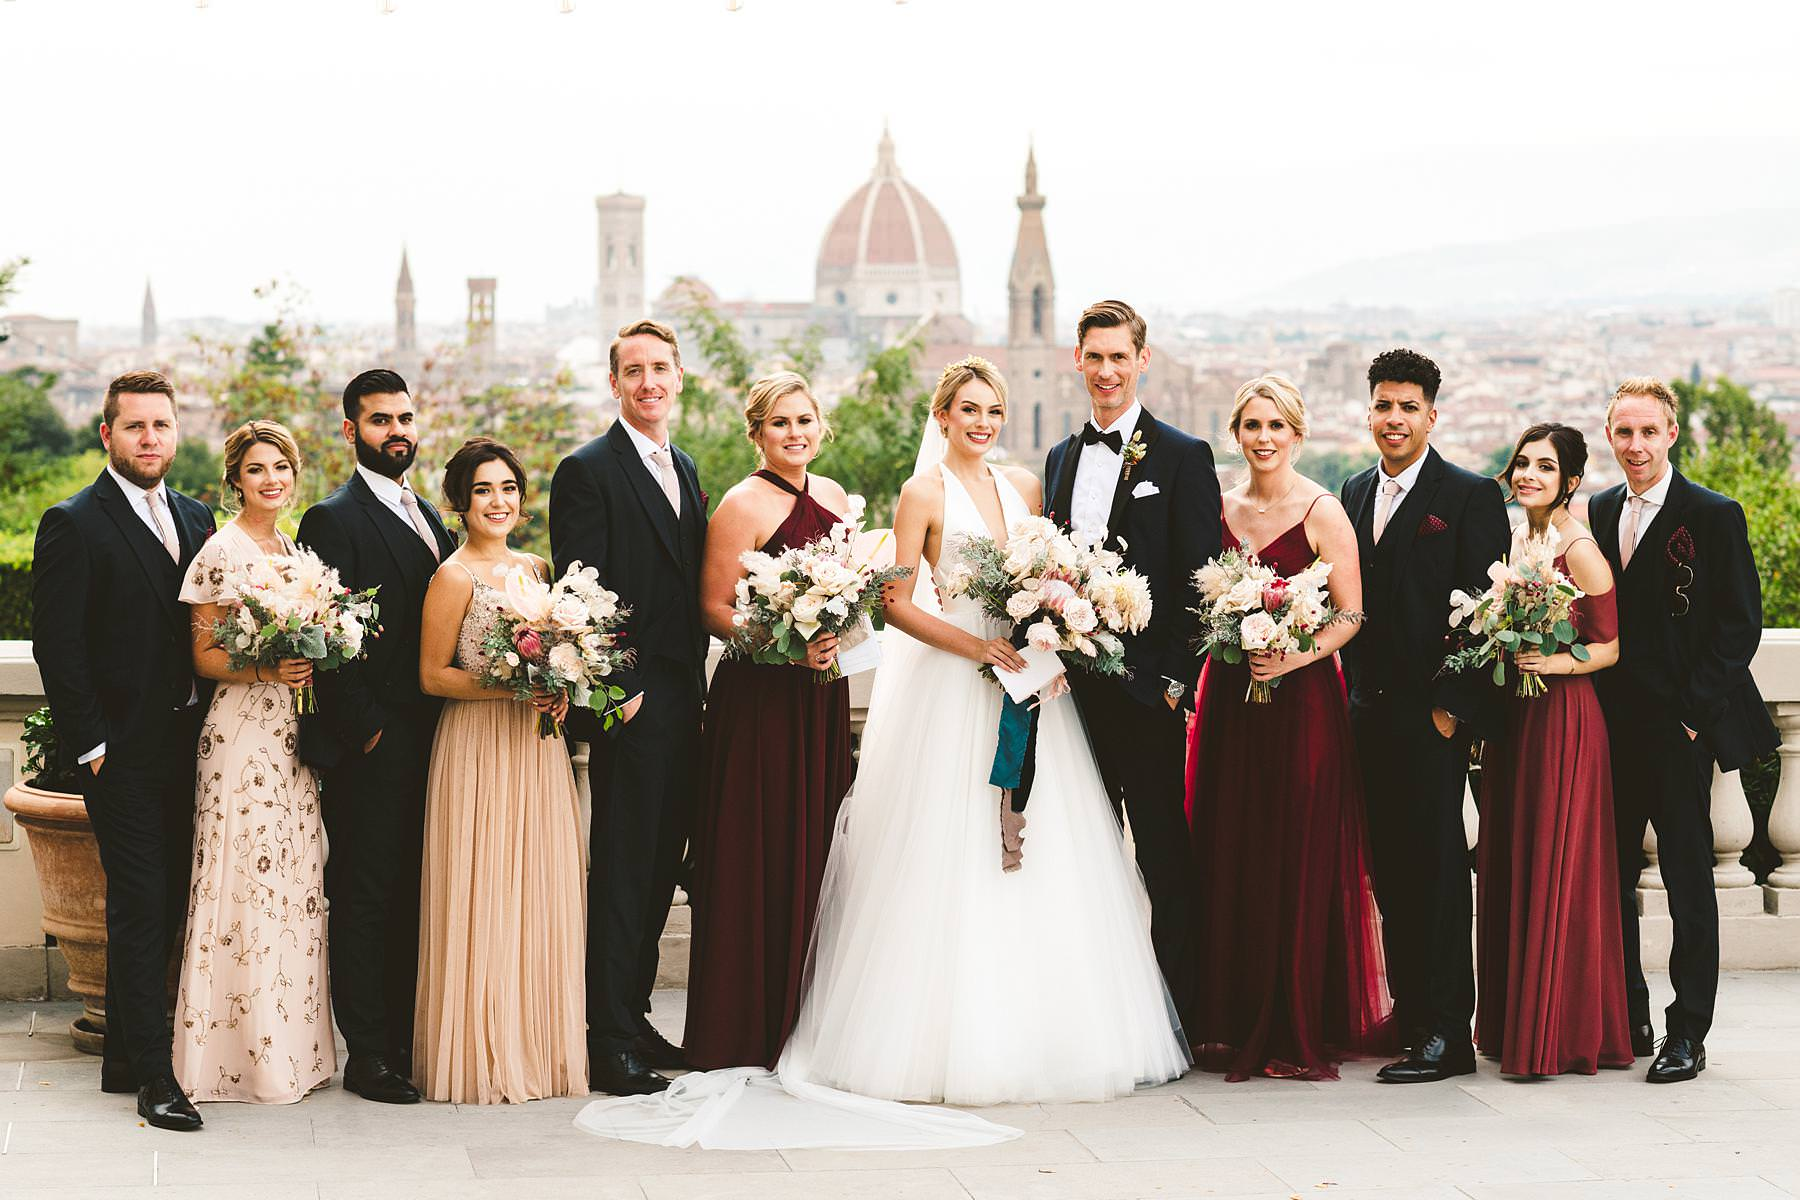 Villa La Vedetta, Florence. Fall in love with the view of the main terrace. Elegant destination wedding party group shoot at the venue. Bride in her Liancarlo gown and bridesmaids in BHLDN dresses. Groom in bespoke tuxedo